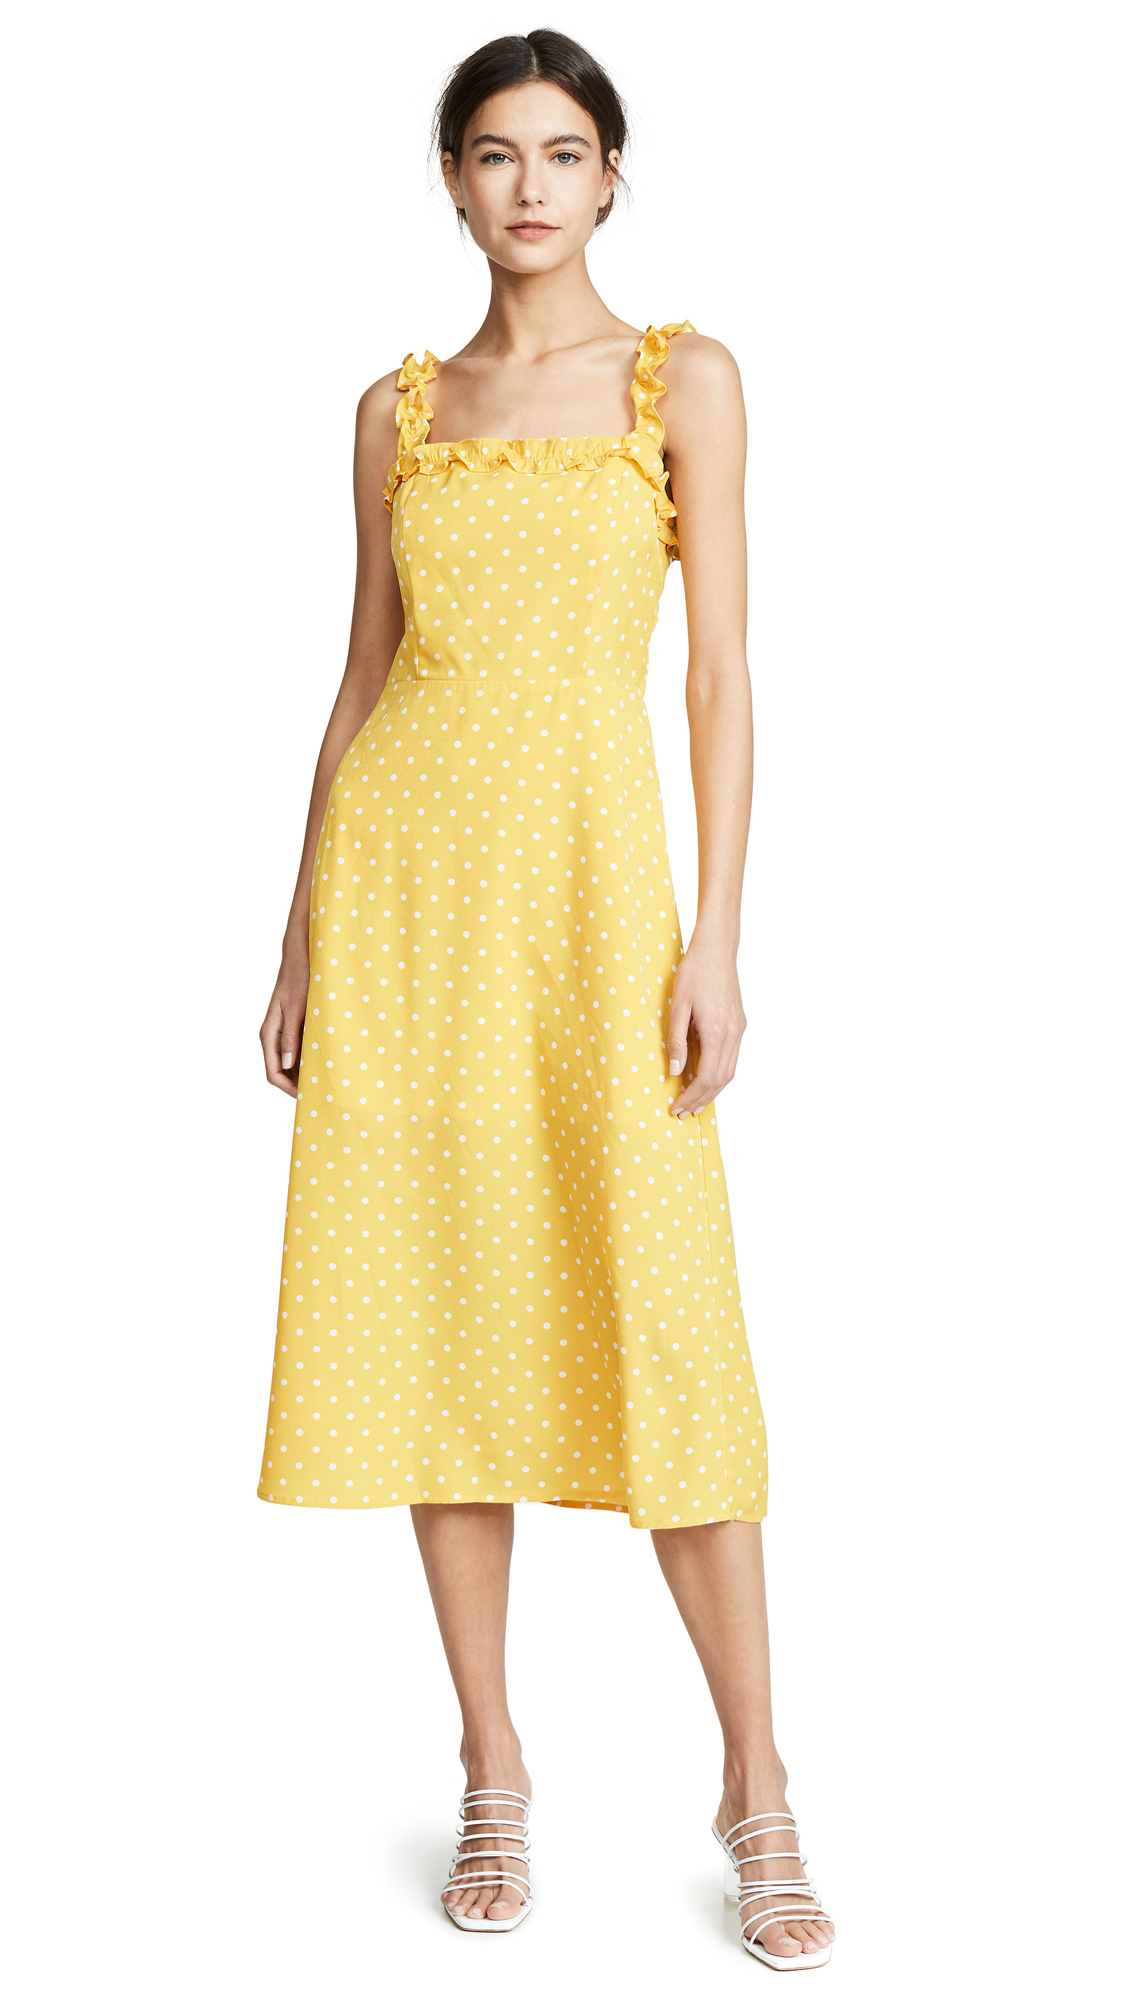 re: named Remy Polka Day Dress - Yellow/White